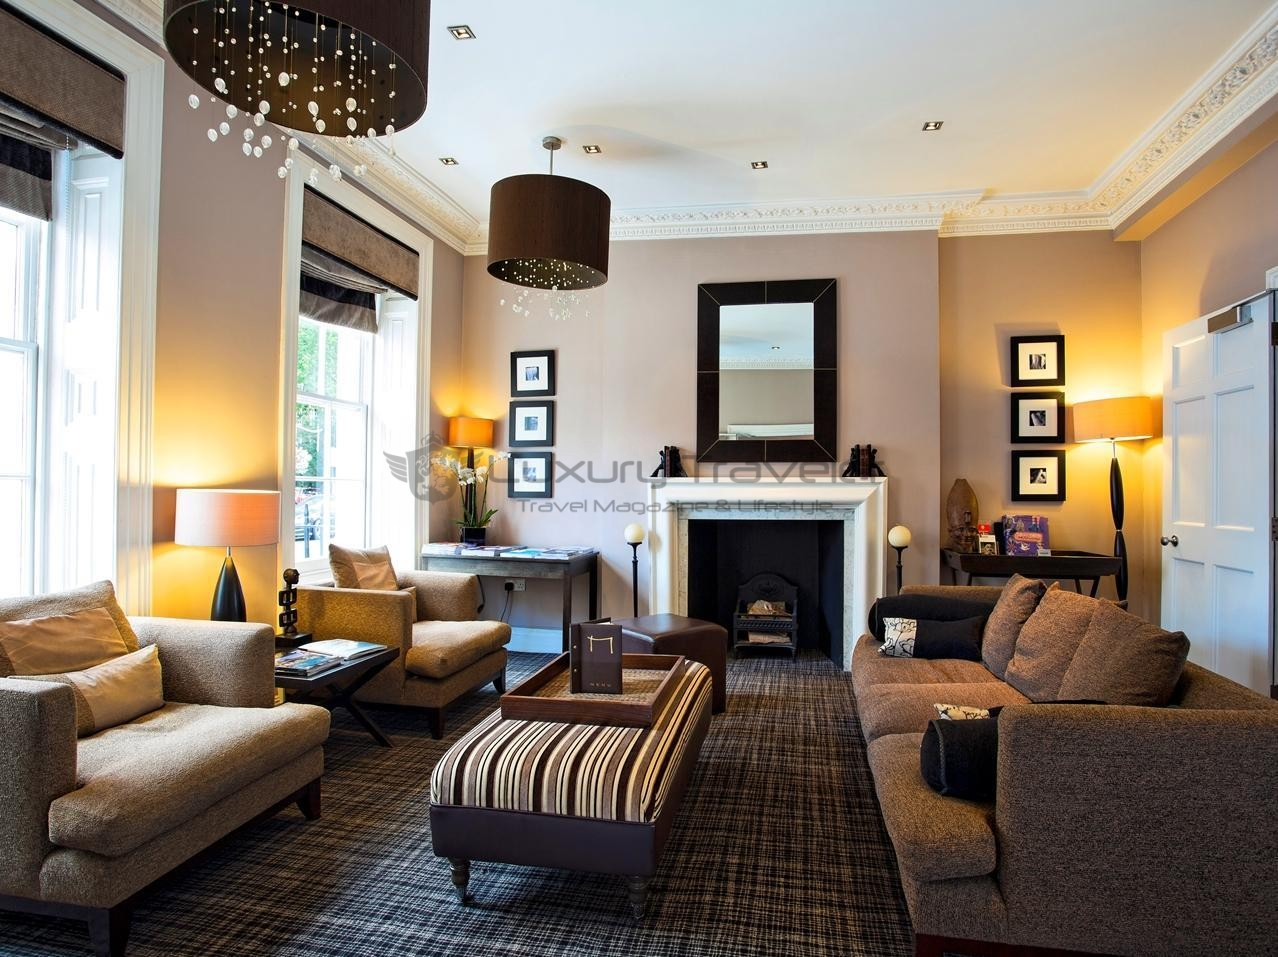 Montagu_Place_Hotel_London_Lounge